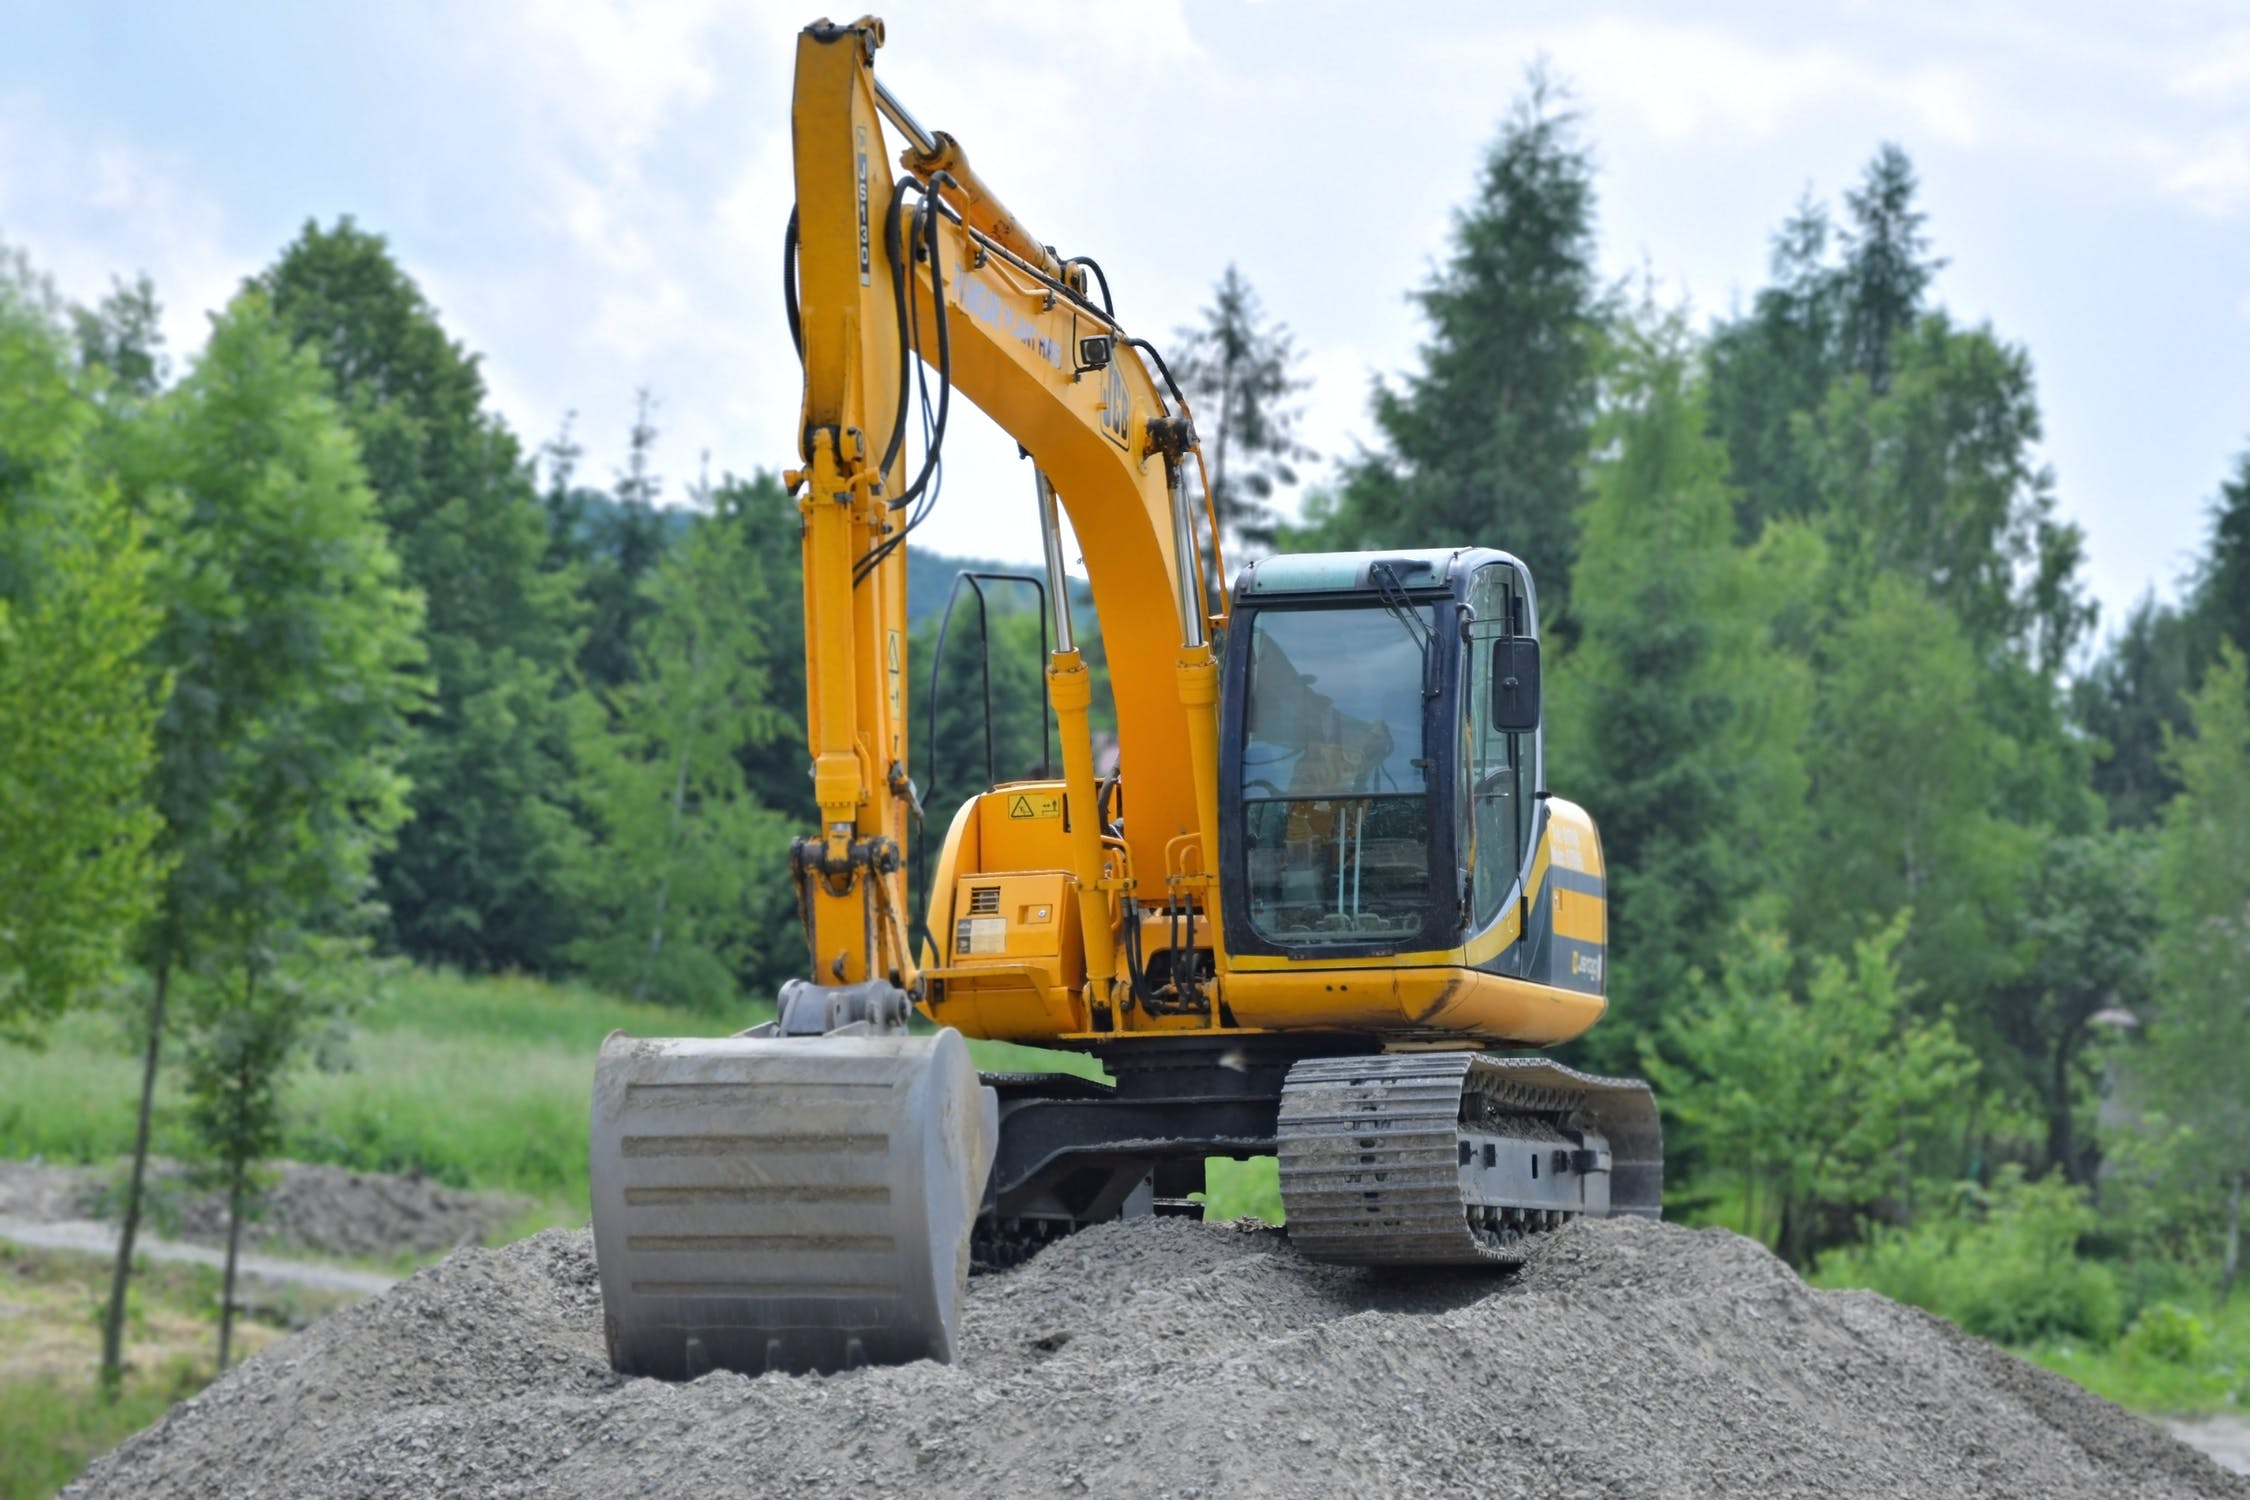 Keys To Running A Successful Construction Business